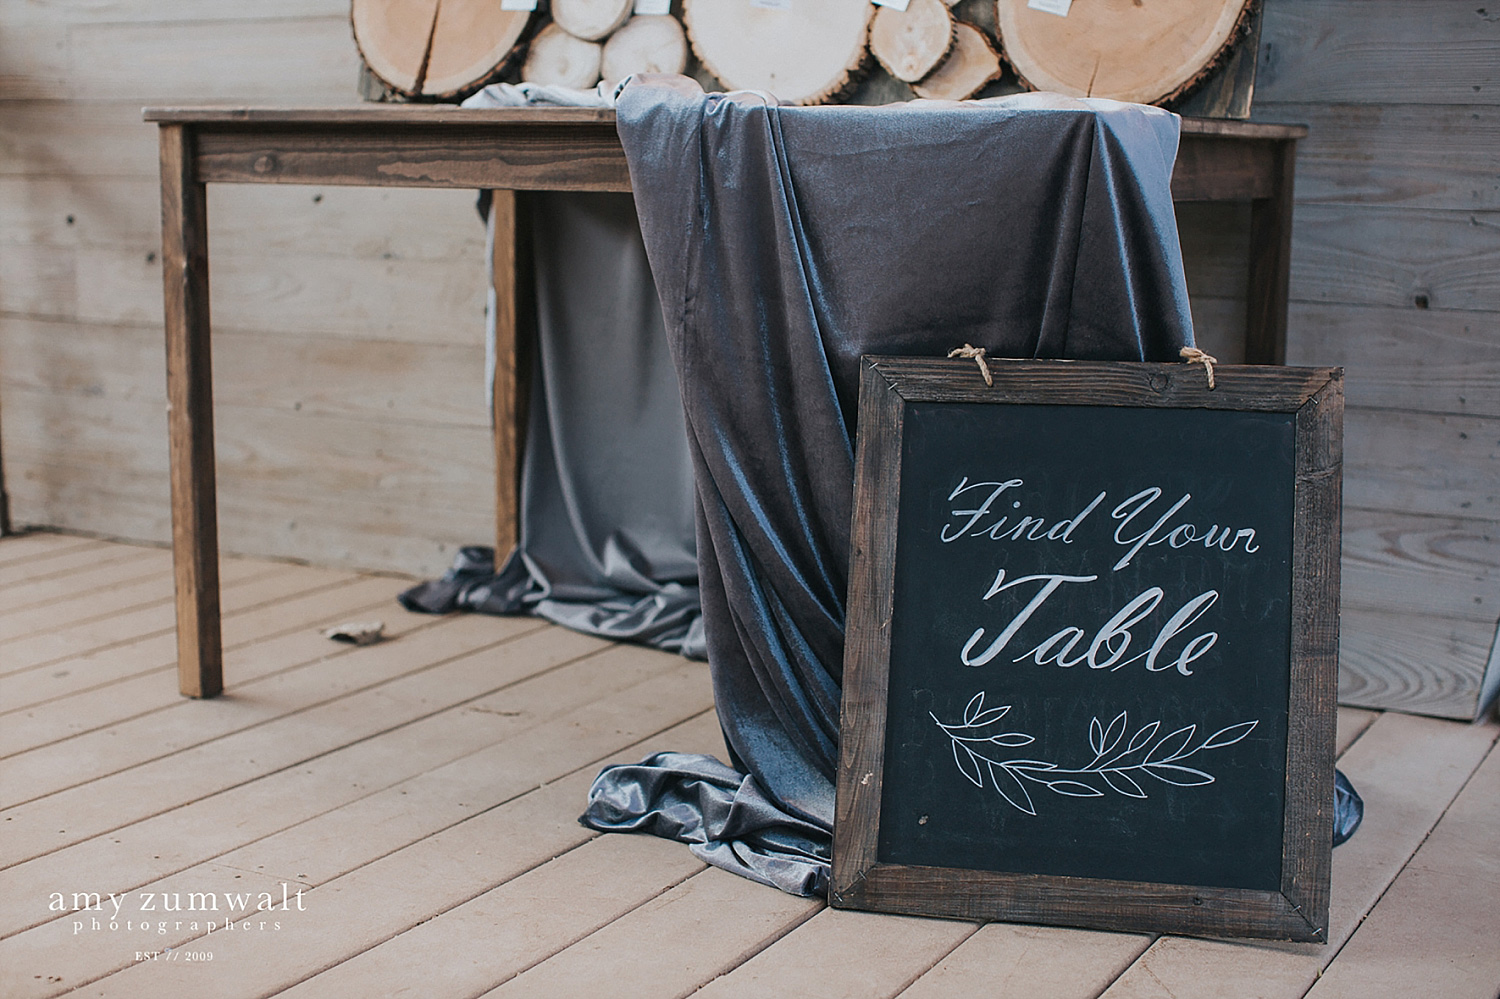 Velvet fabric and a chalk board sign